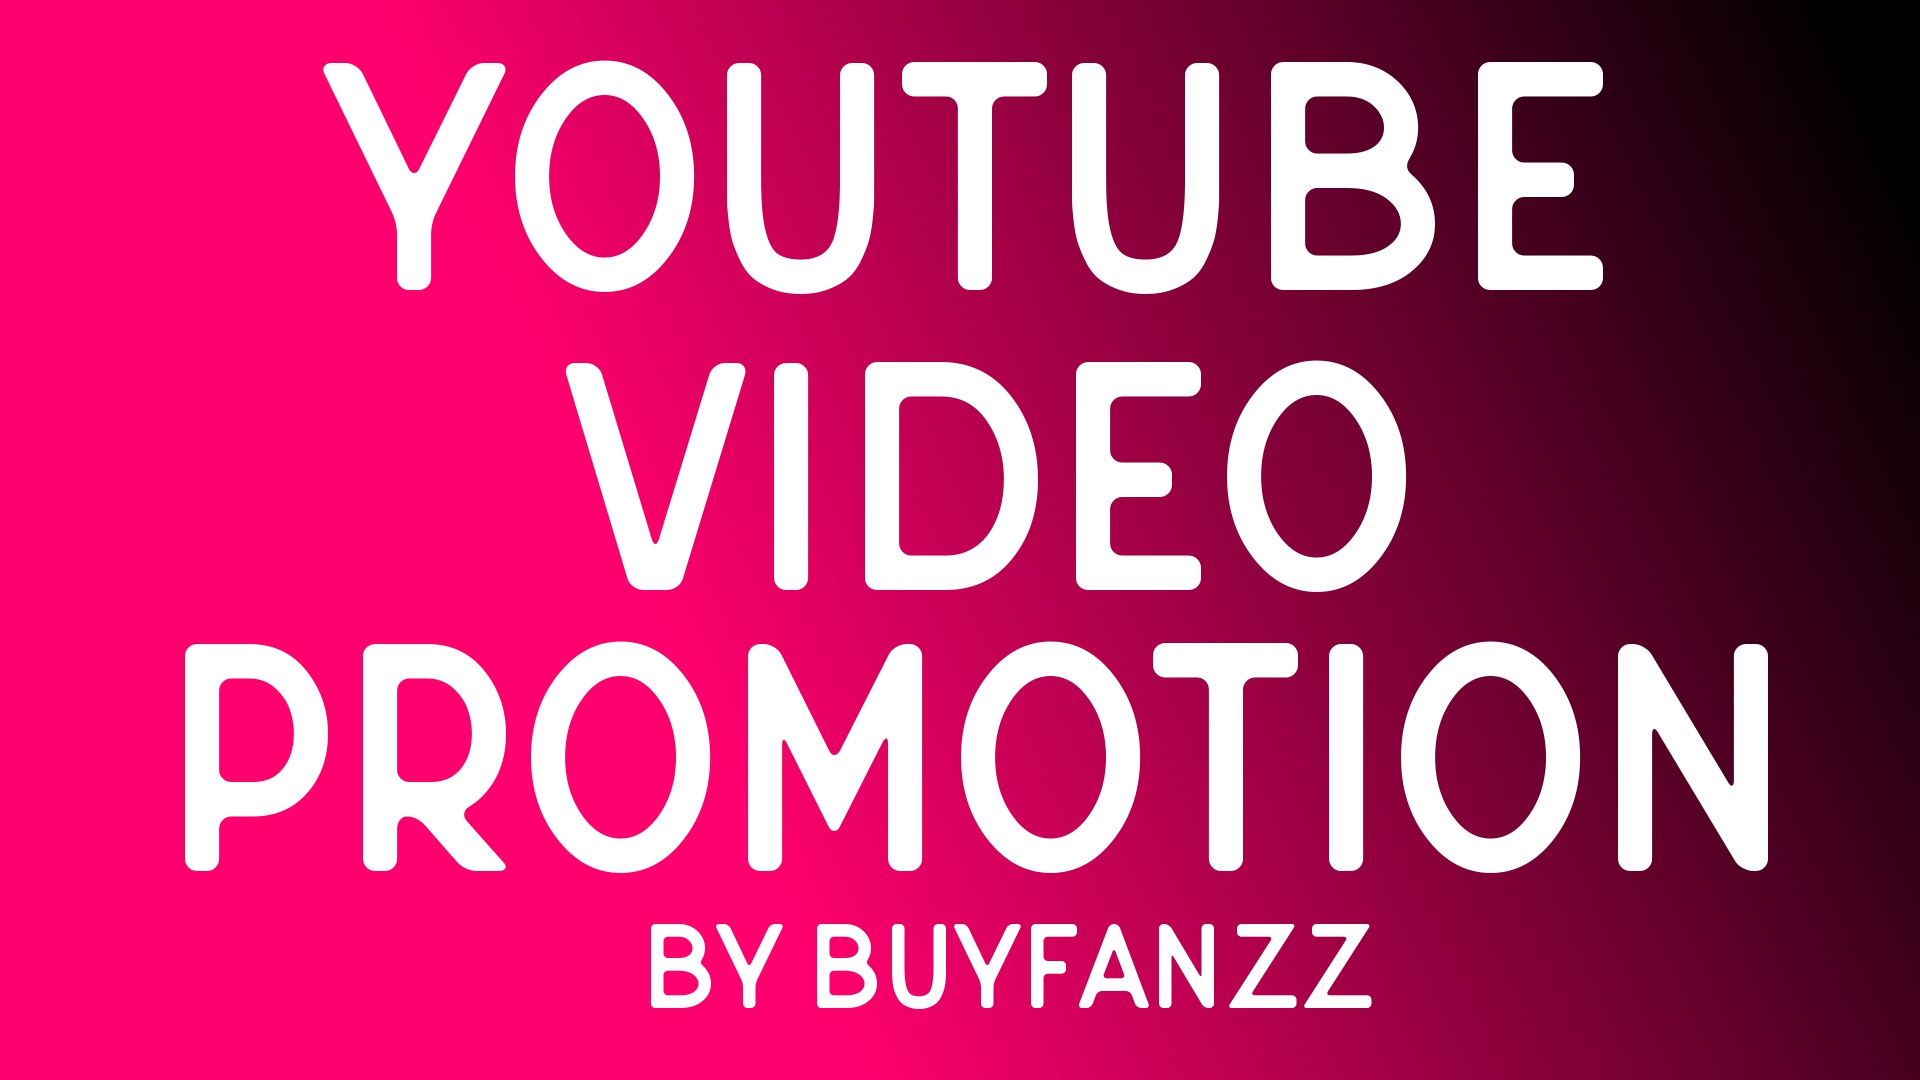 YouTube Video Marketing With Organic Method